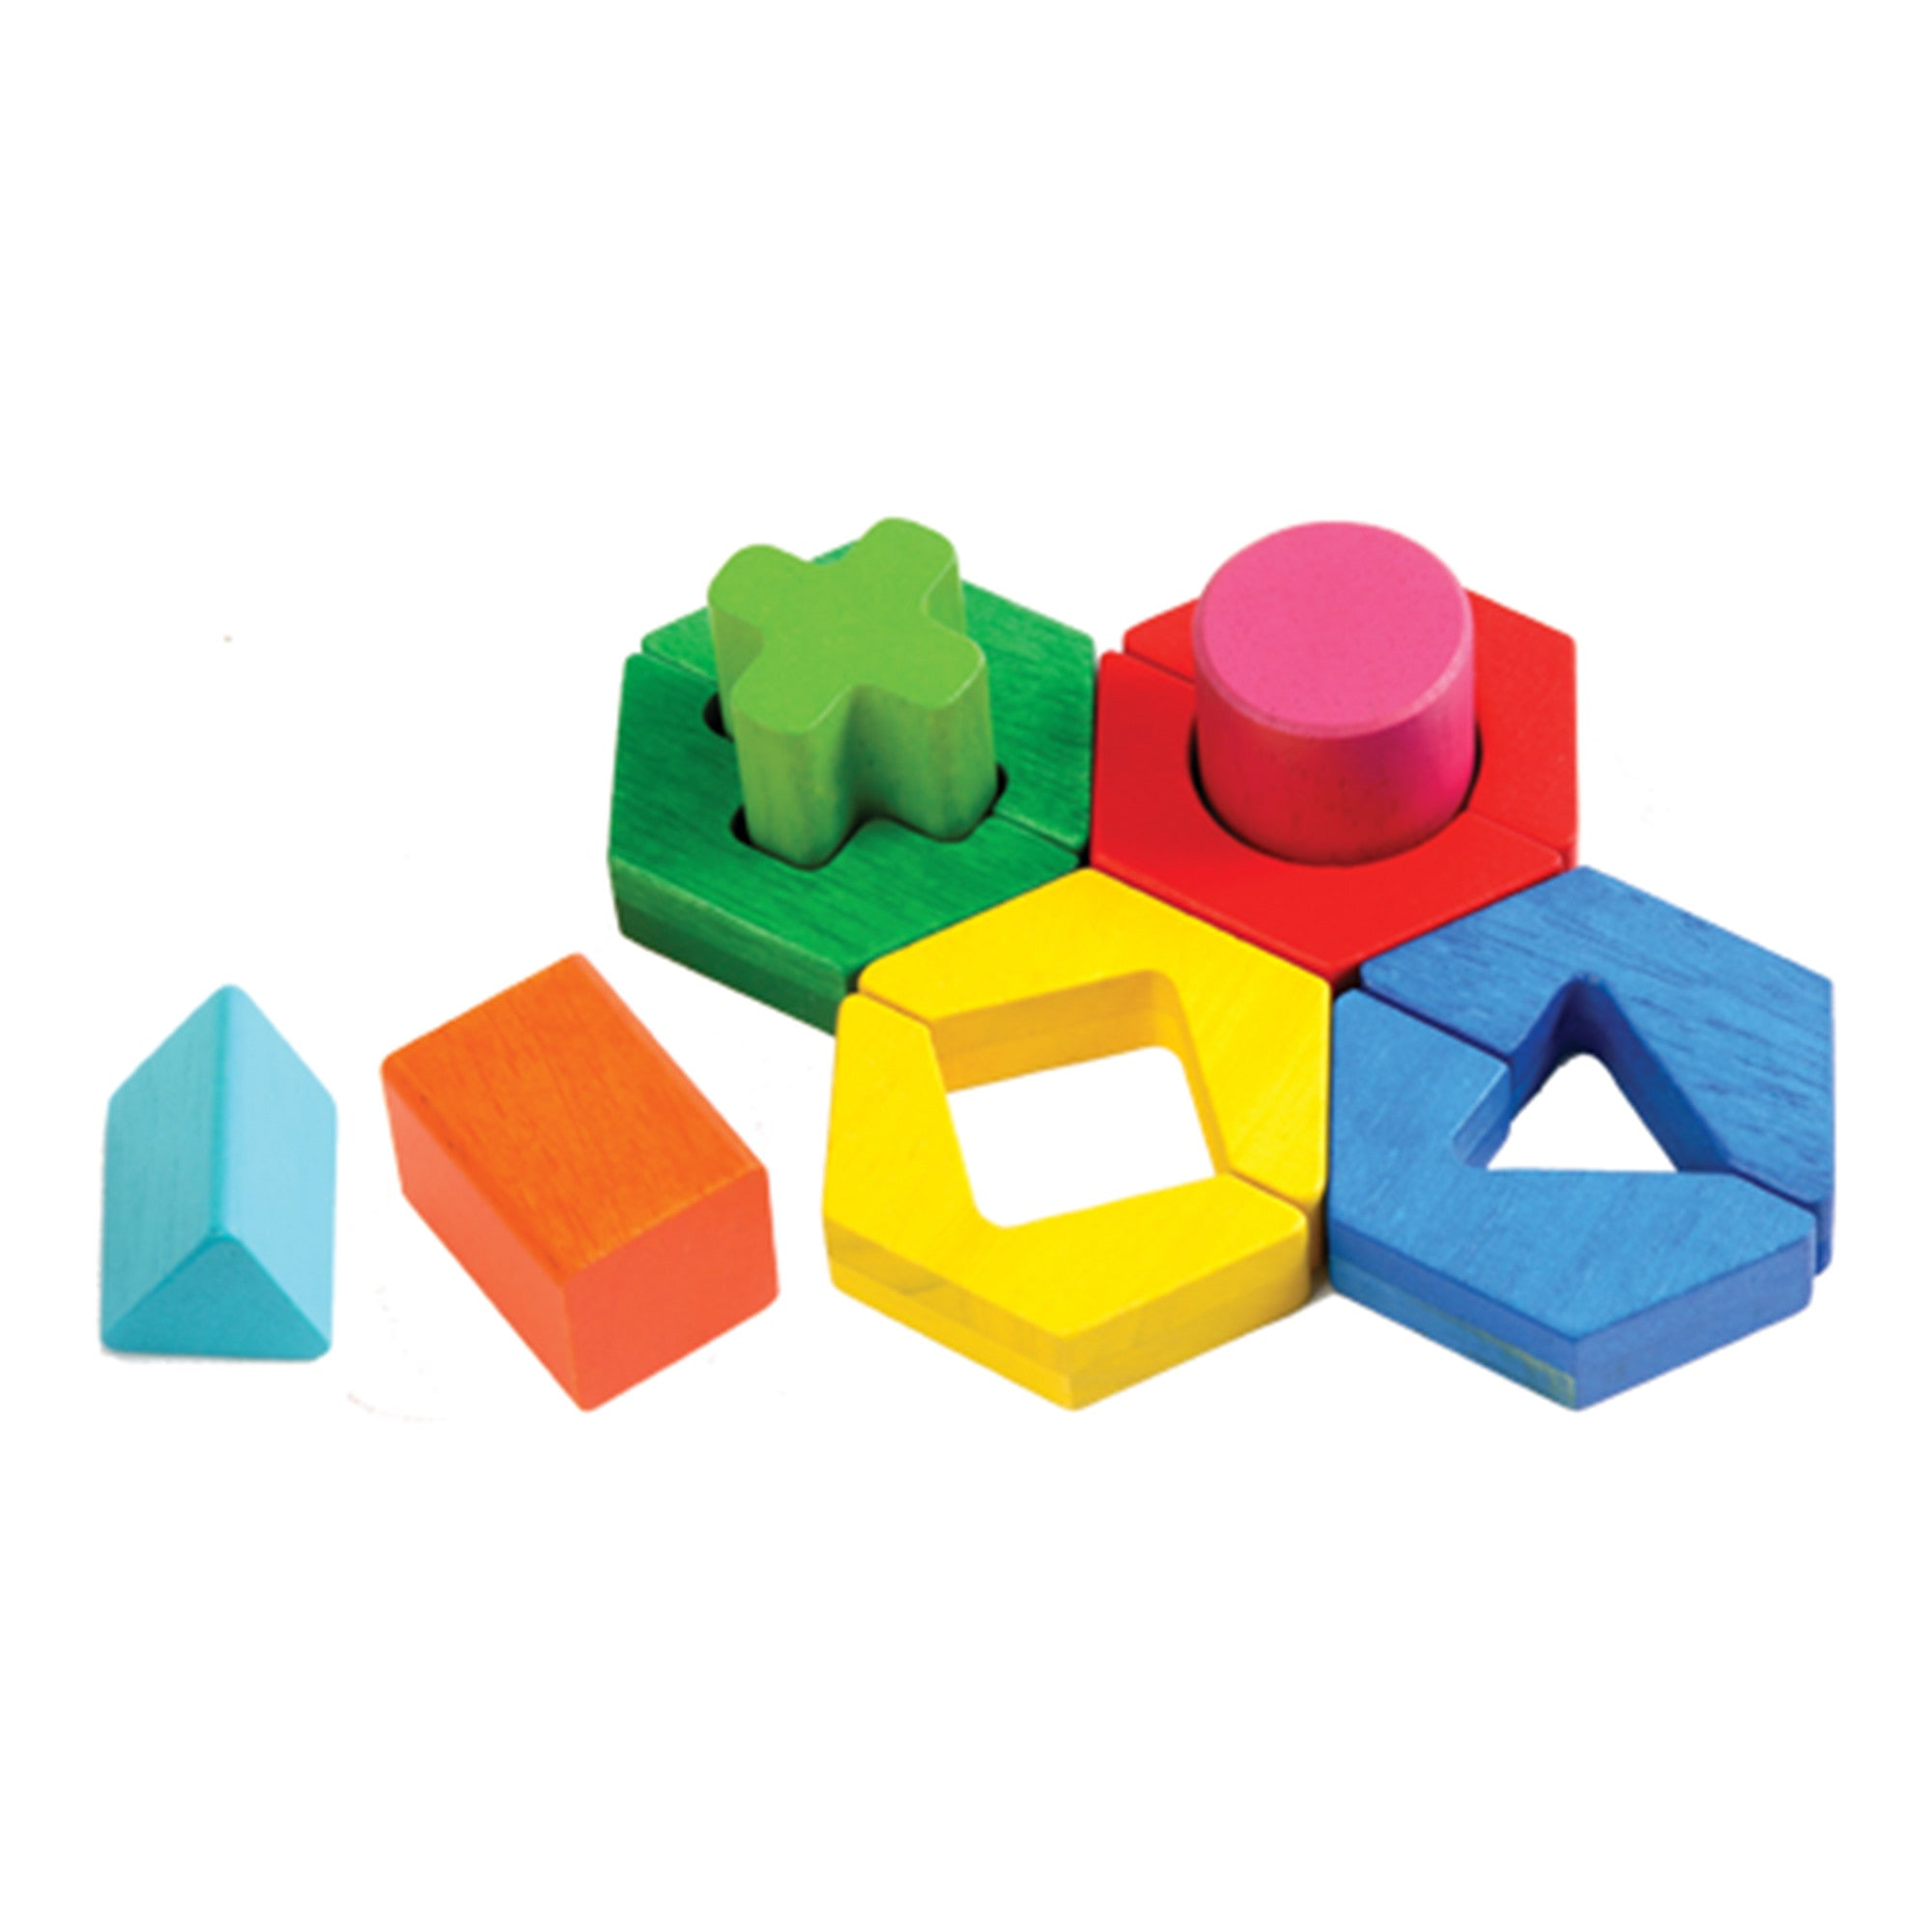 Wooden Rainbow Shapes Puzzle 'Fit Me In' Voila Puzzles at Little Earth Nest Eco Shop